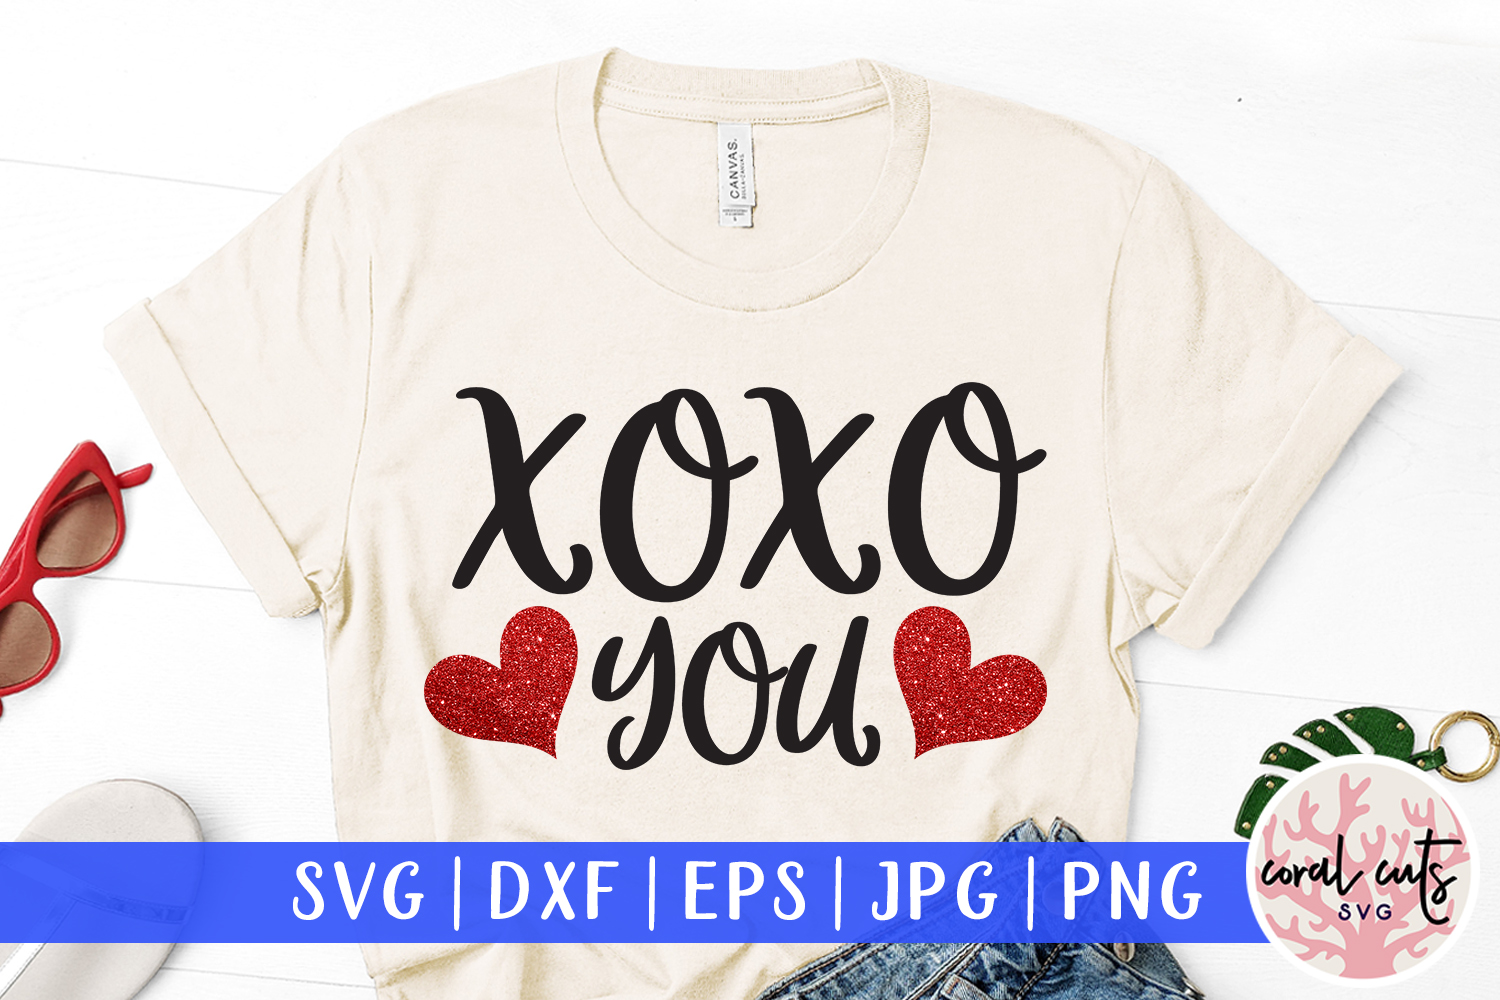 Download Free Xoxo You Graphic By Coralcutssvg Creative Fabrica for Cricut Explore, Silhouette and other cutting machines.